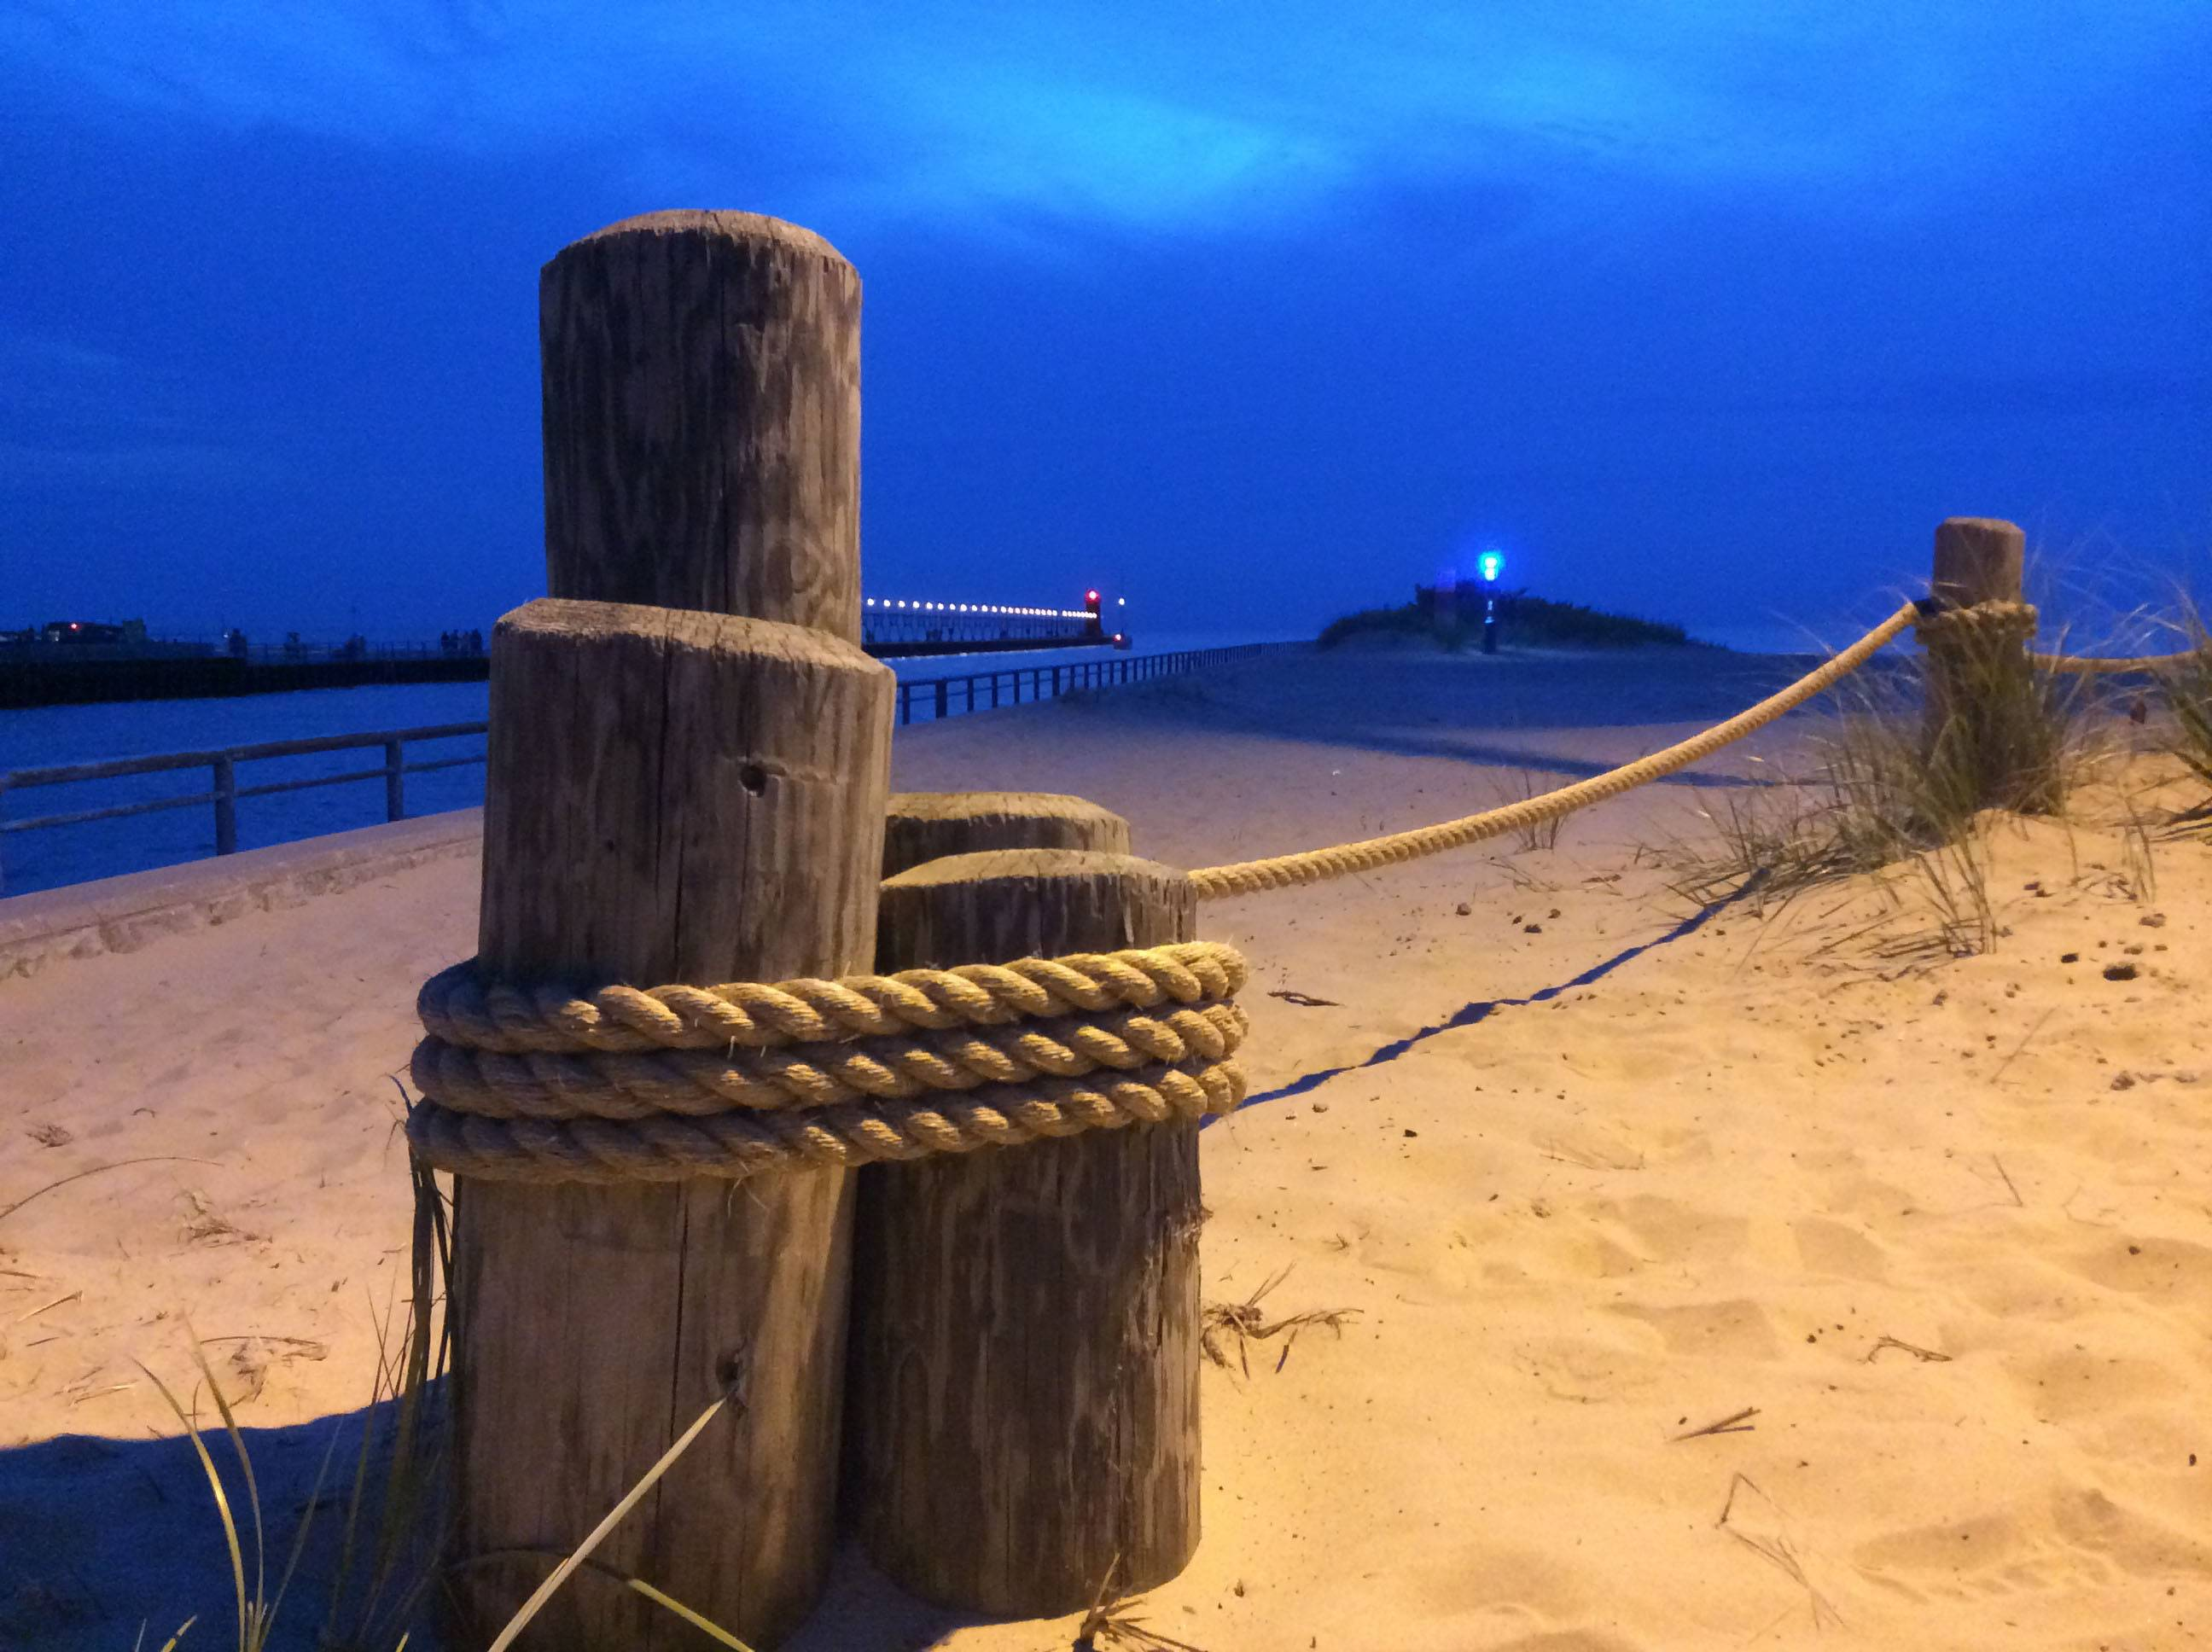 This photo is of pilings and the beach area at the South Haven Harbor Entrance in Michigan, shortly after sunset with clouds. I like the way the overhead light highlights the pilings, rope, and sand.